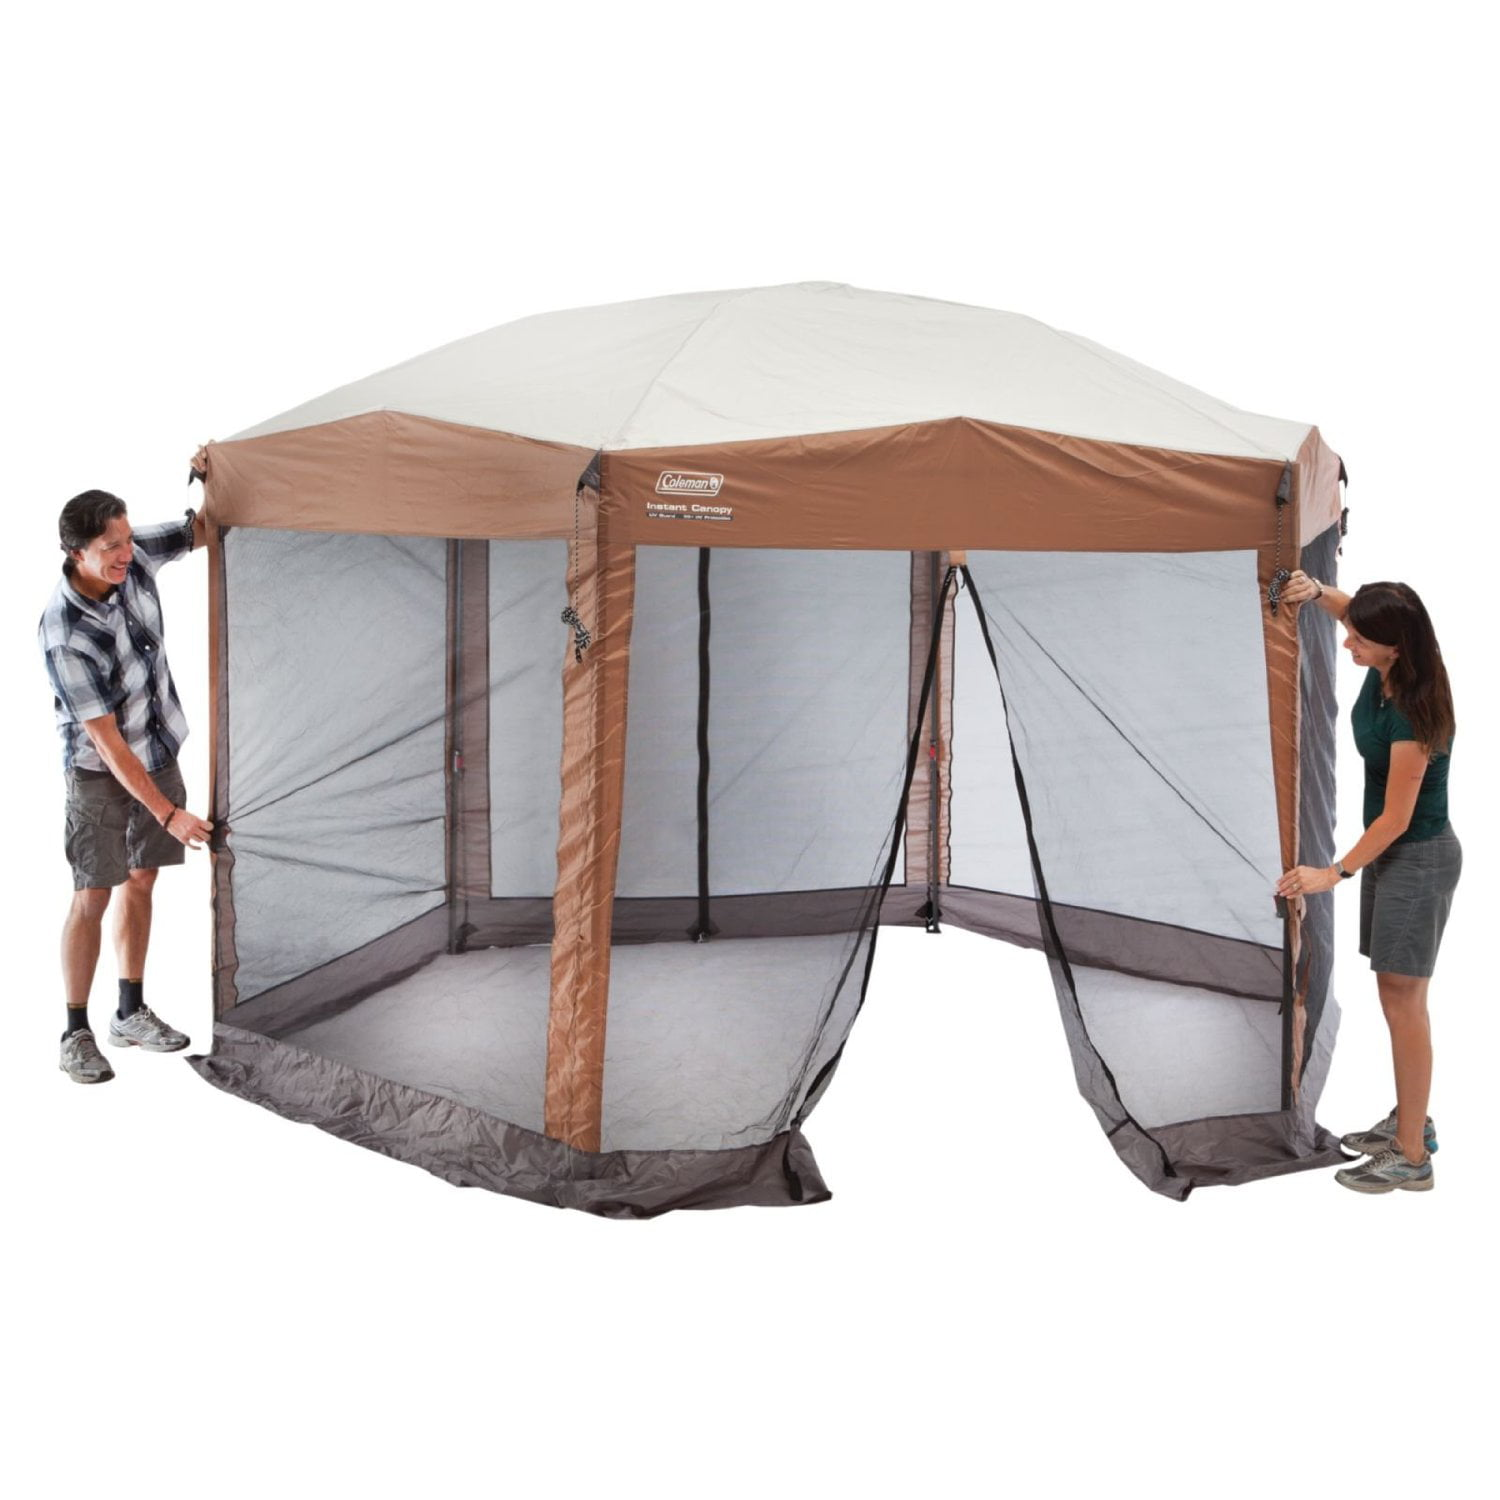 Coleman Back Home 12 x 10-Foot Instant Screen House Hexagon Canopy | 2000028003 by COLEMAN